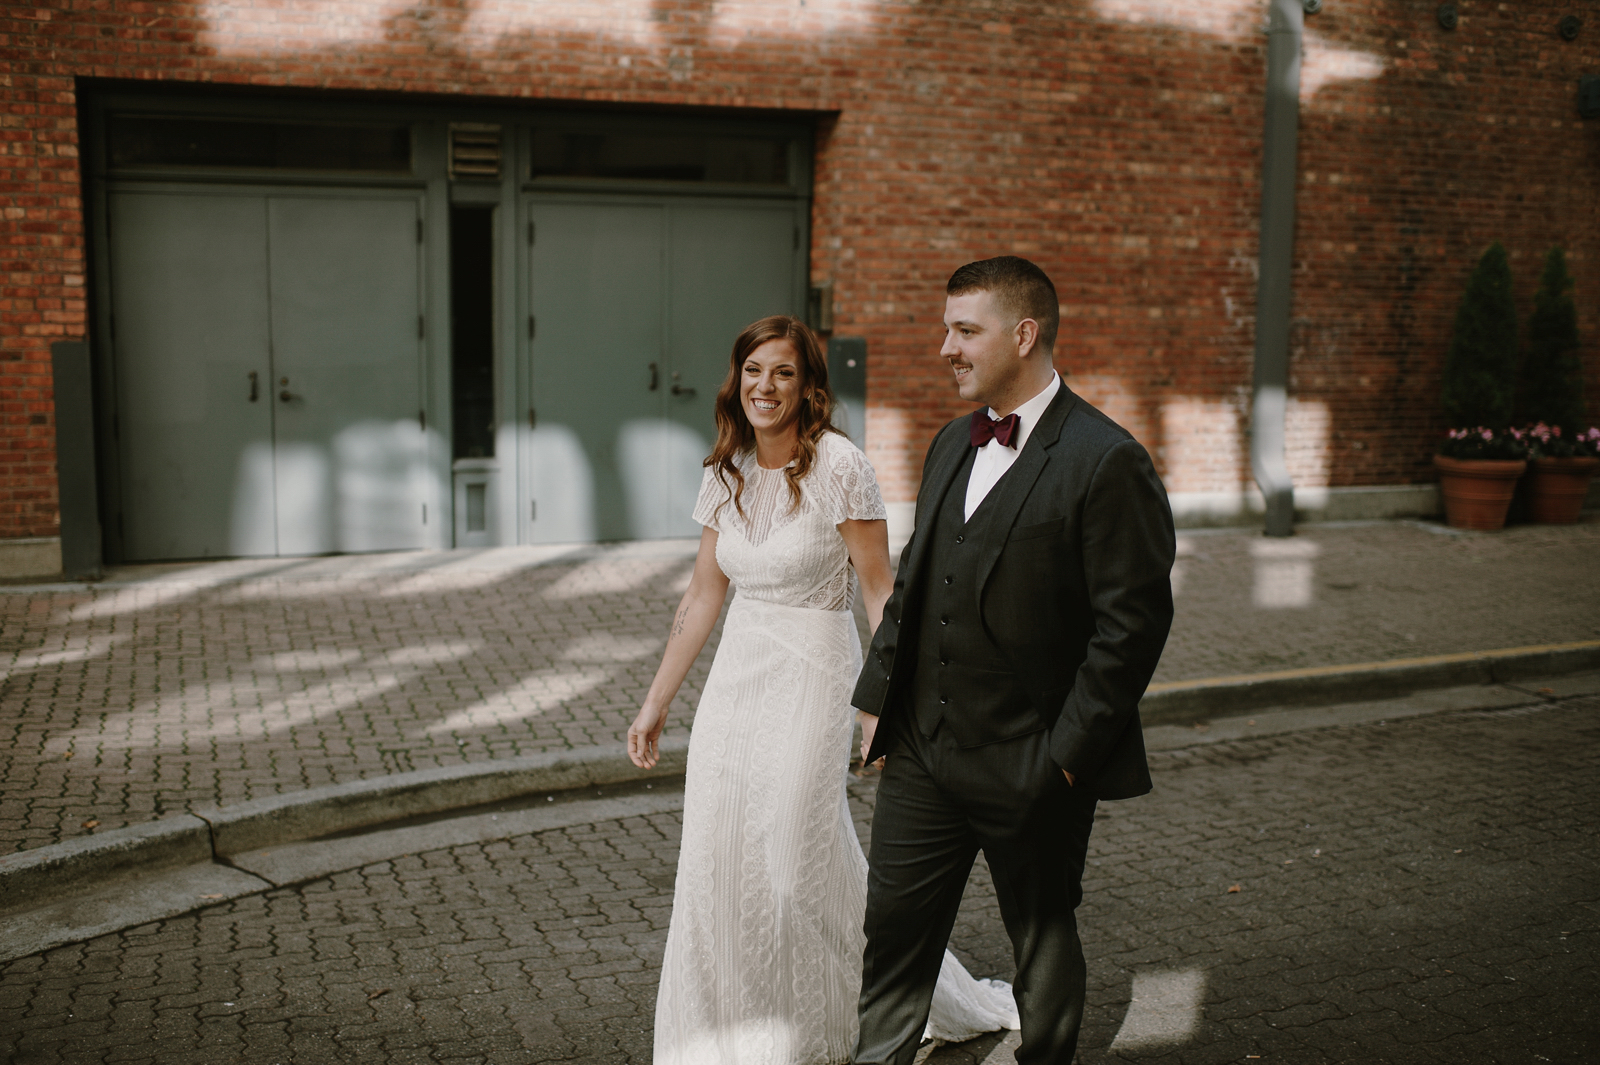 Downtown_Seattle_Wedding_Foundry_Sinclair_Moore015.JPG